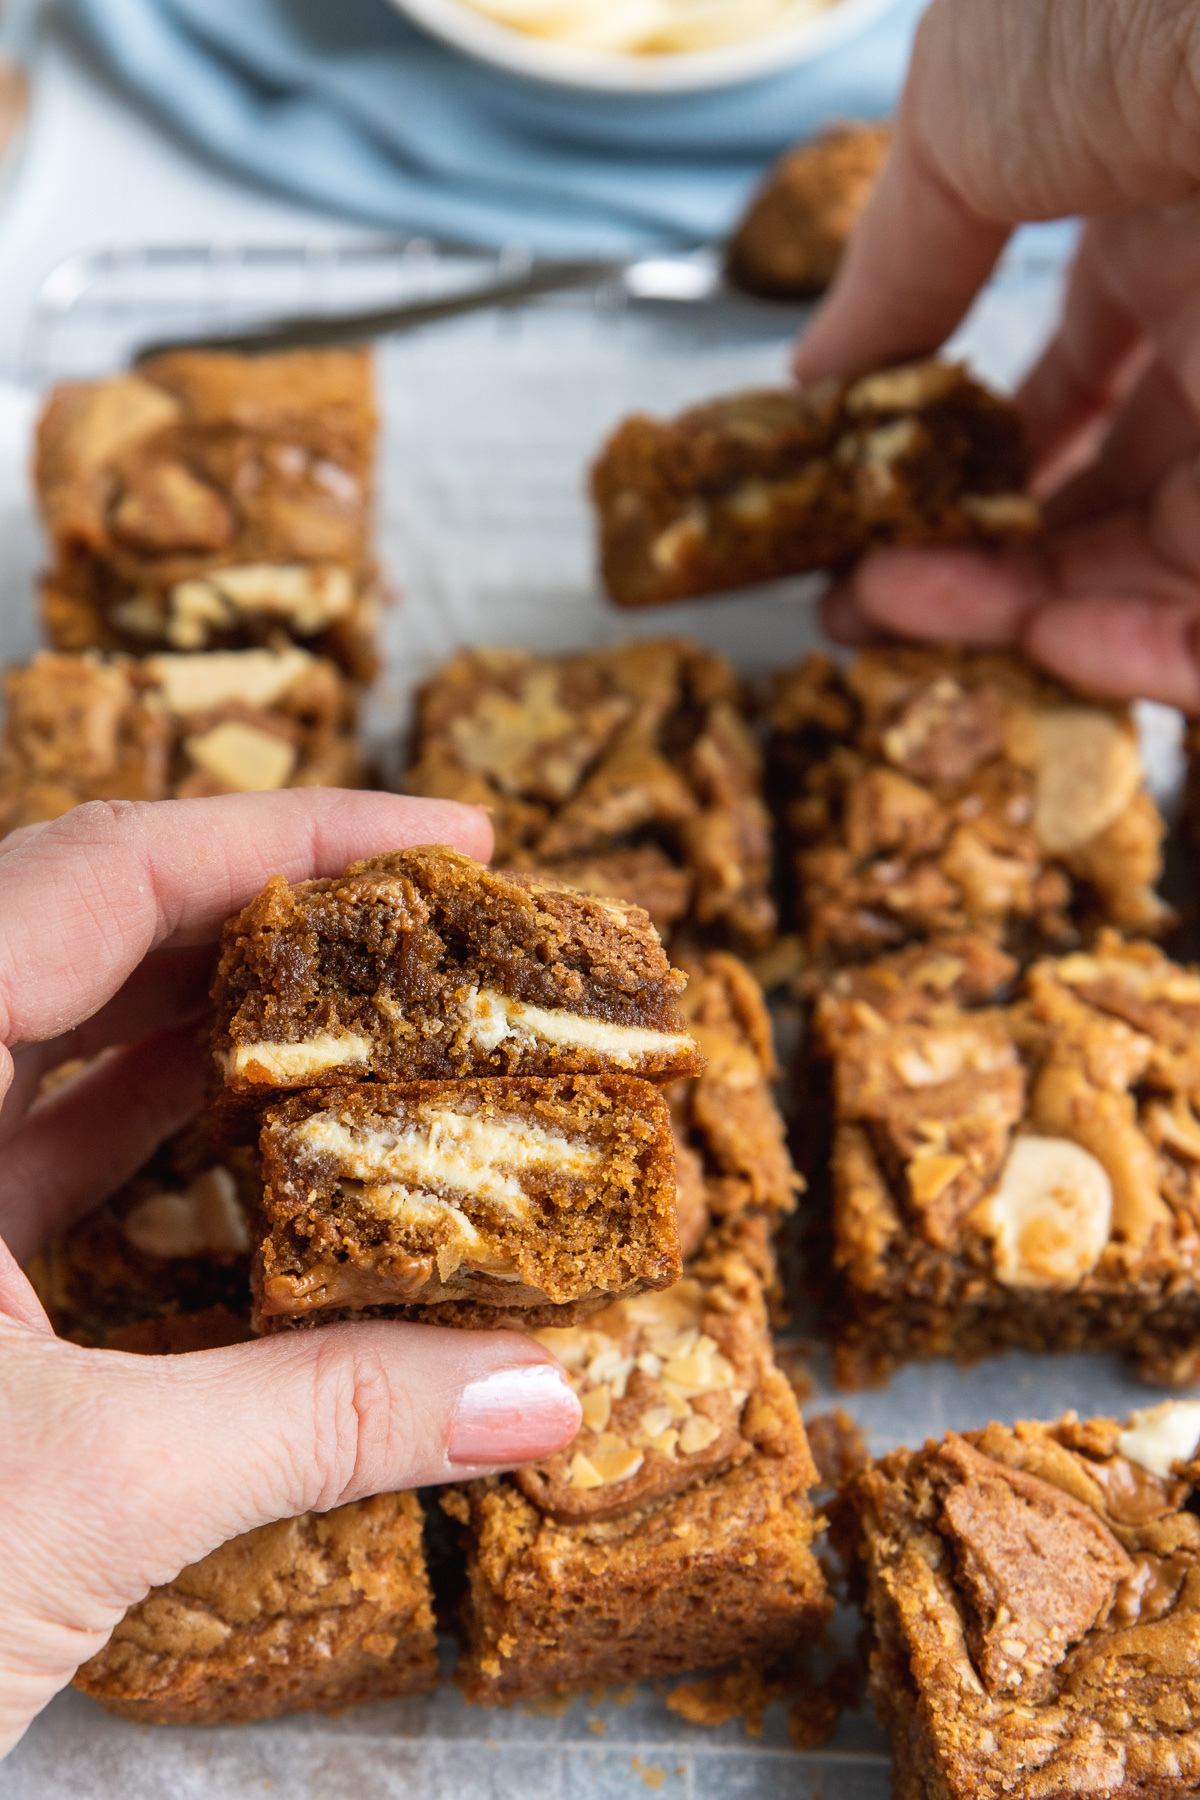 Someone holding a stack of two Biscoff blondies over the others in the pan with someone else taking a blondie in the background